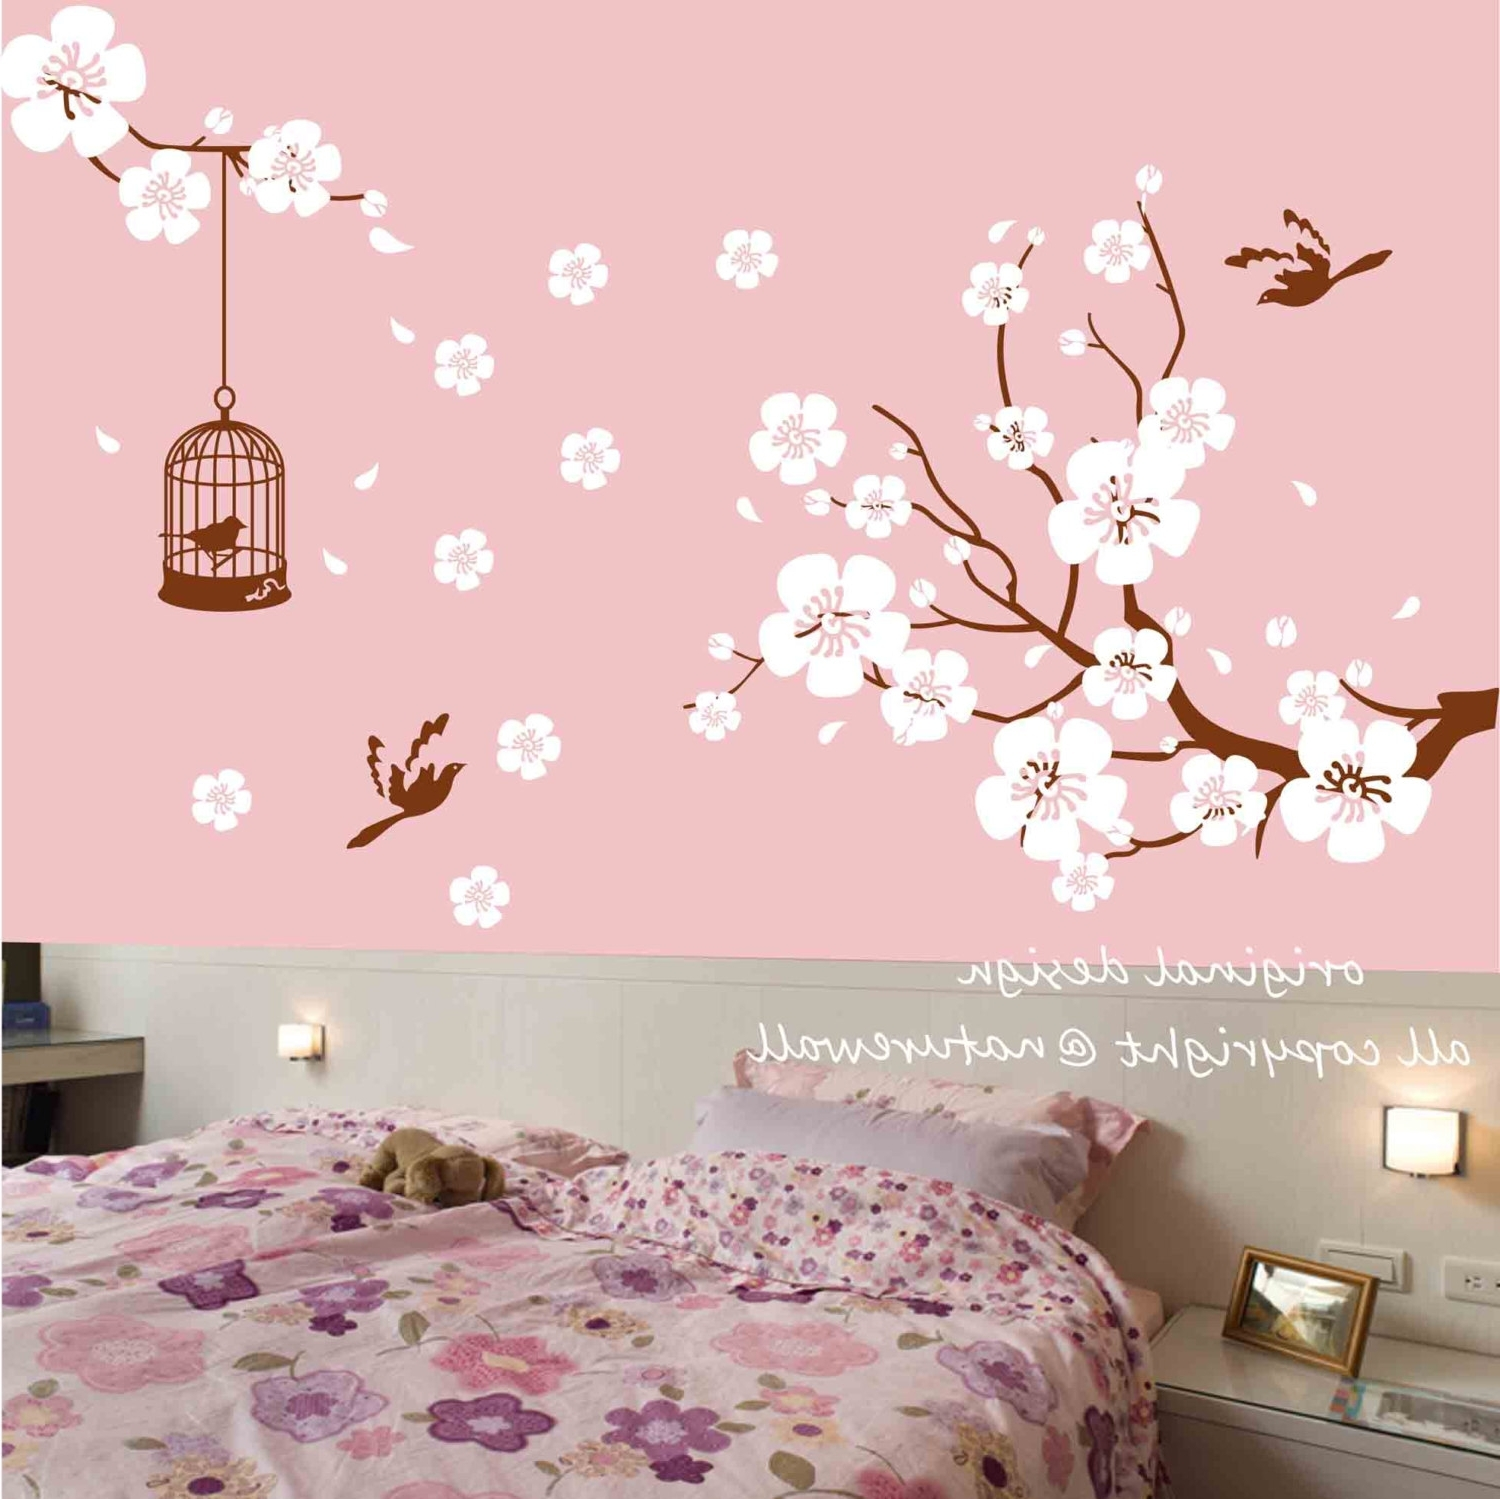 Newest Red Cherry Blossom Wall Art With Regard To Japanese Cherry Blossom Wall Decal At Home And Interior Design Ideas (View 12 of 15)